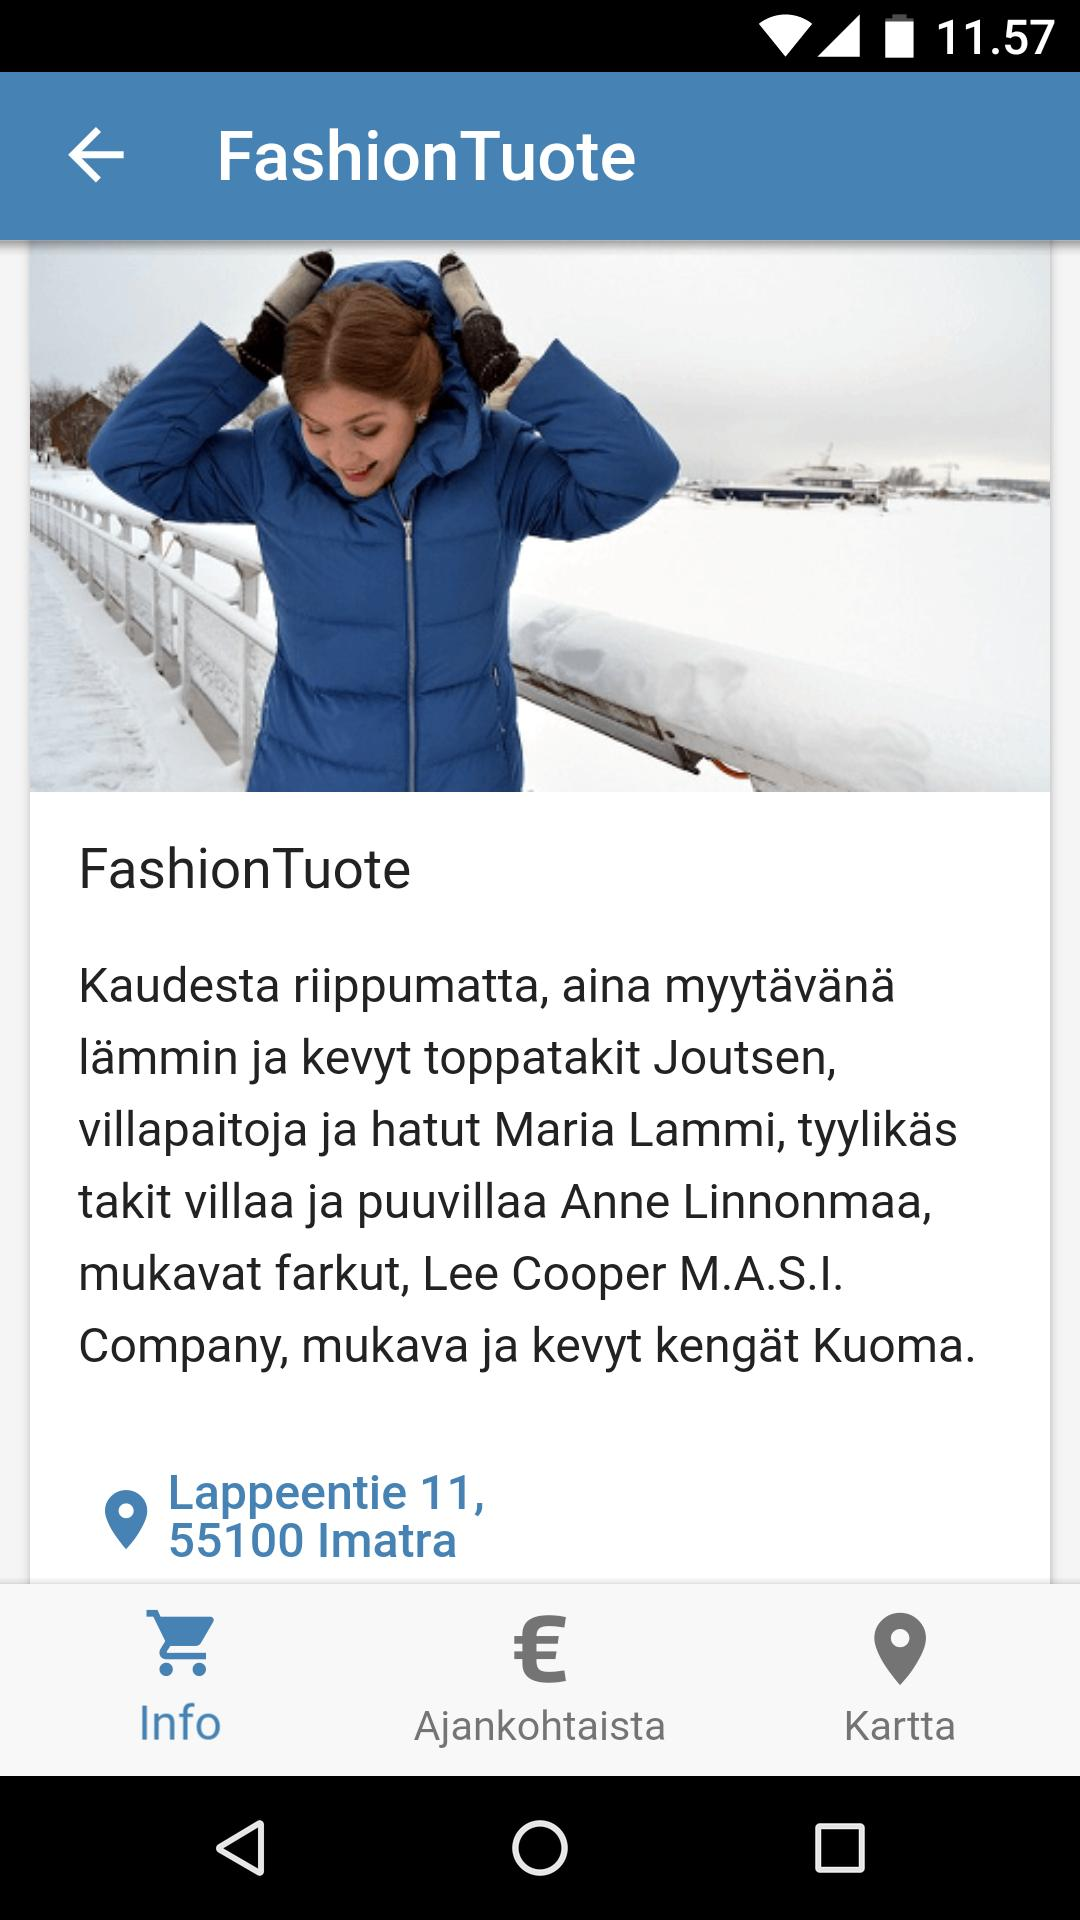 Lappeenranta Imatra For Android Apk Download